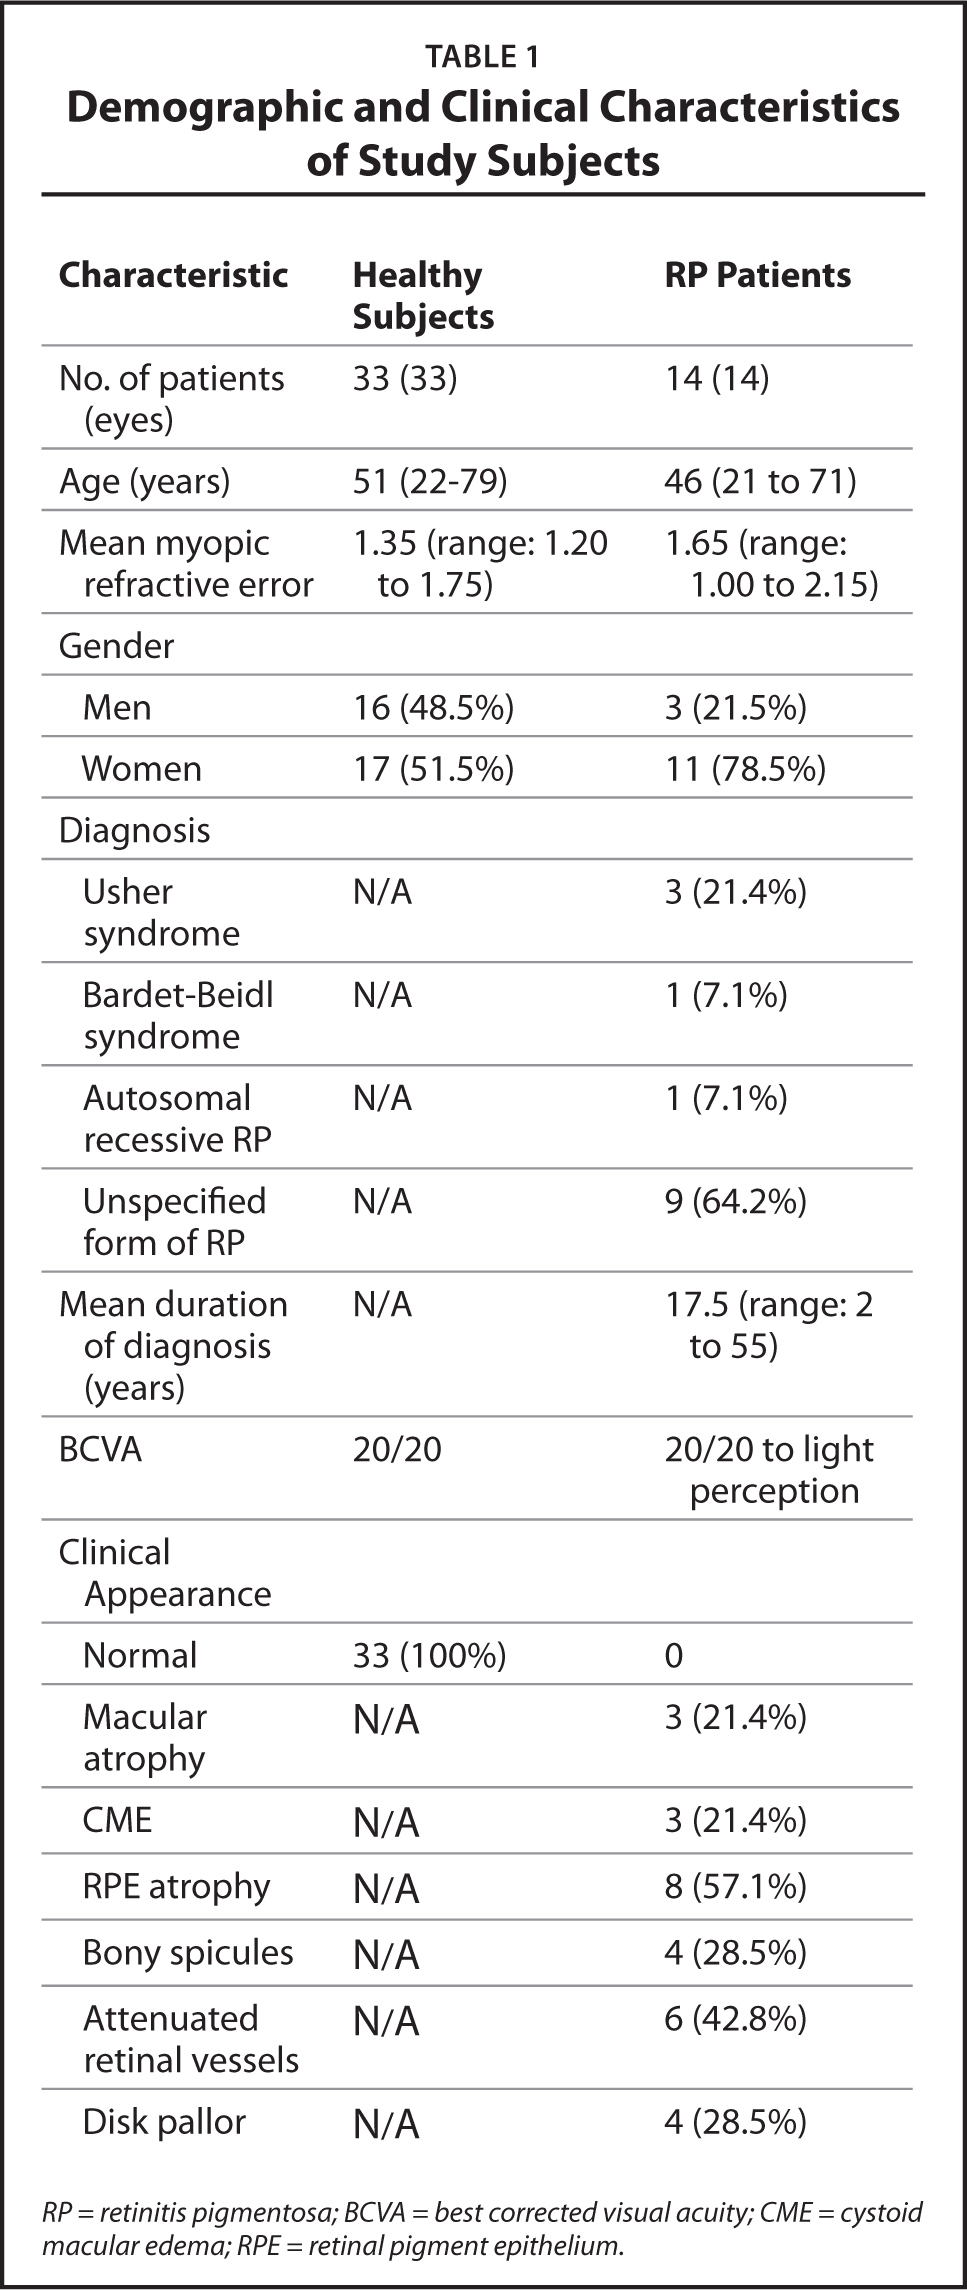 Demographic and Clinical Characteristics of Study Subjects